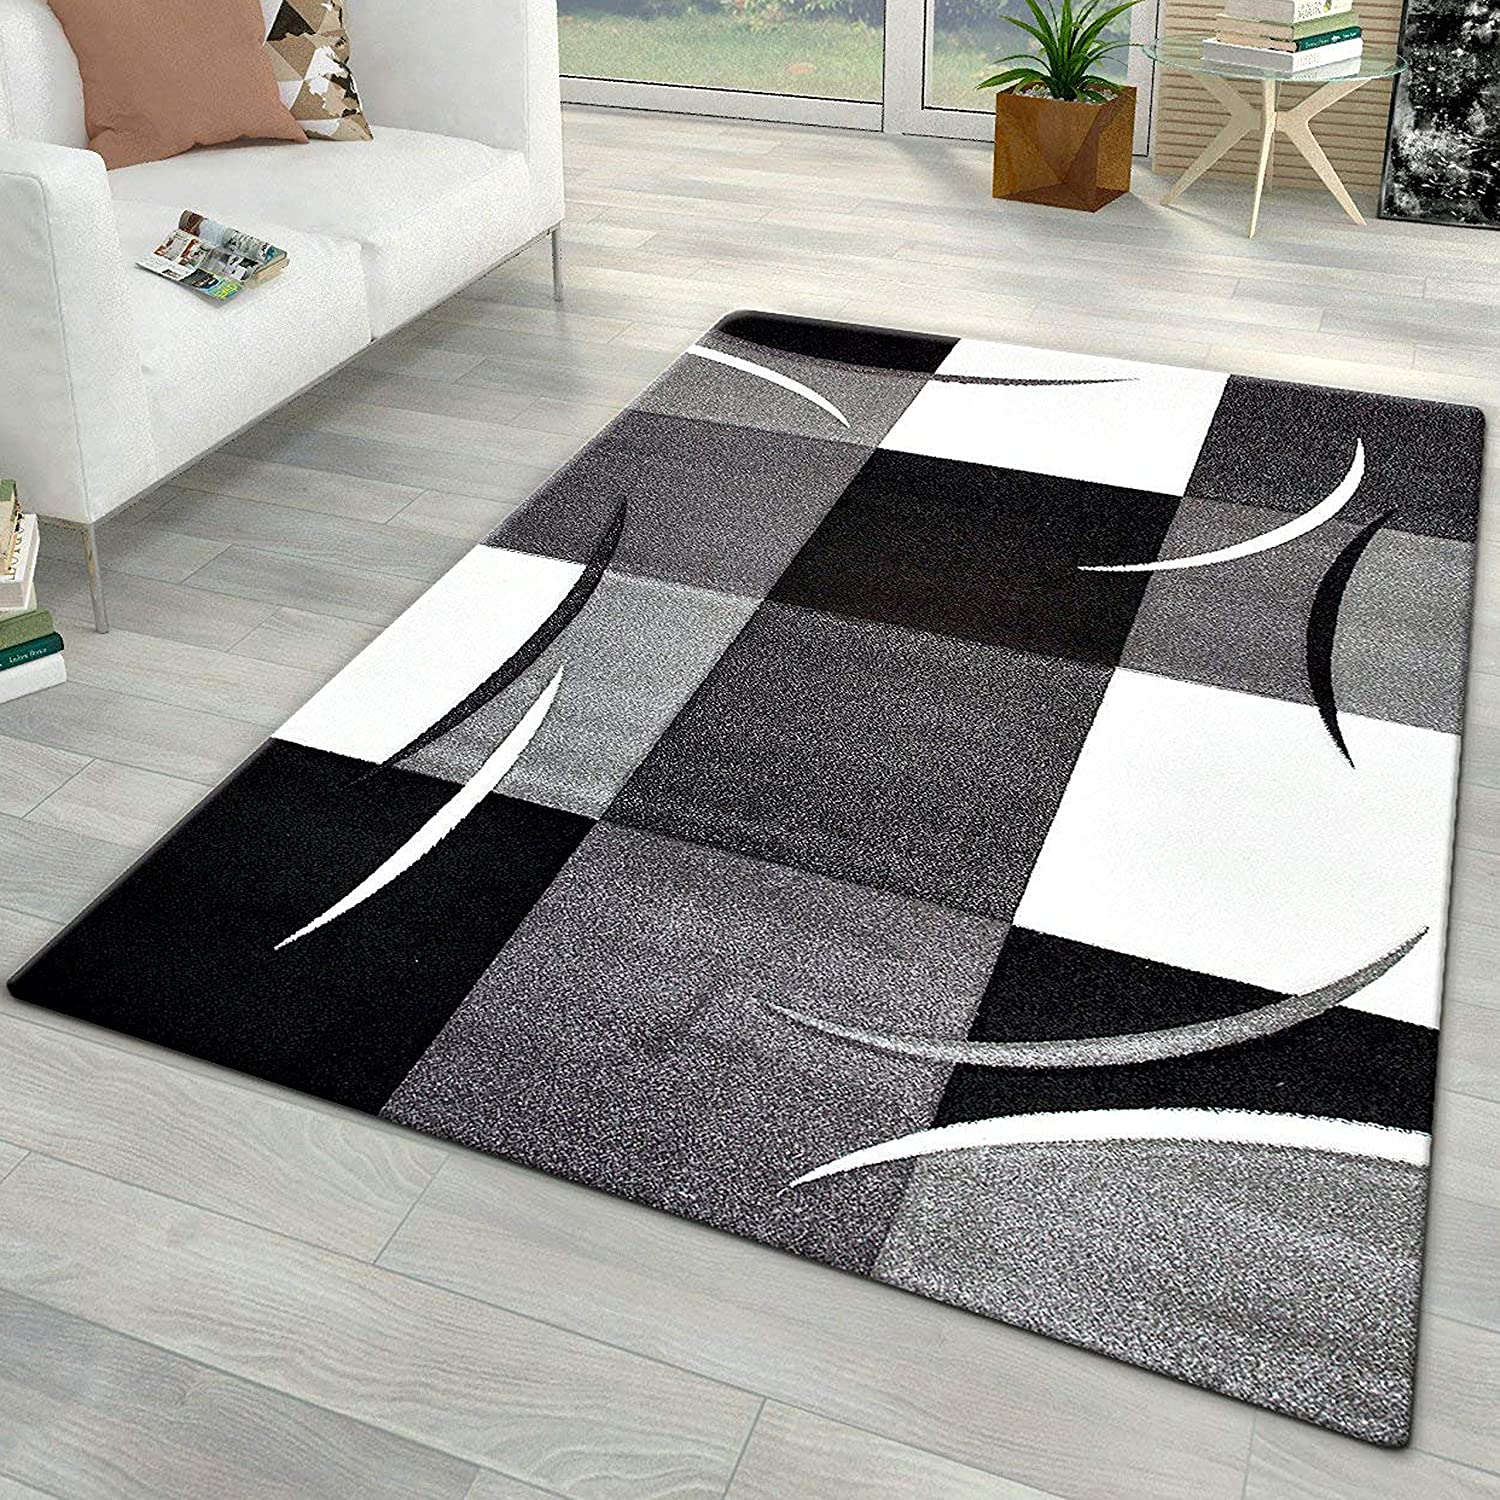 Xrug Modern Rugs For Living Room Grey Black White Carpet Mat Check Design Small Large 160x230cm 5 3 X7 7 Amazon Co Uk Kitchen Home